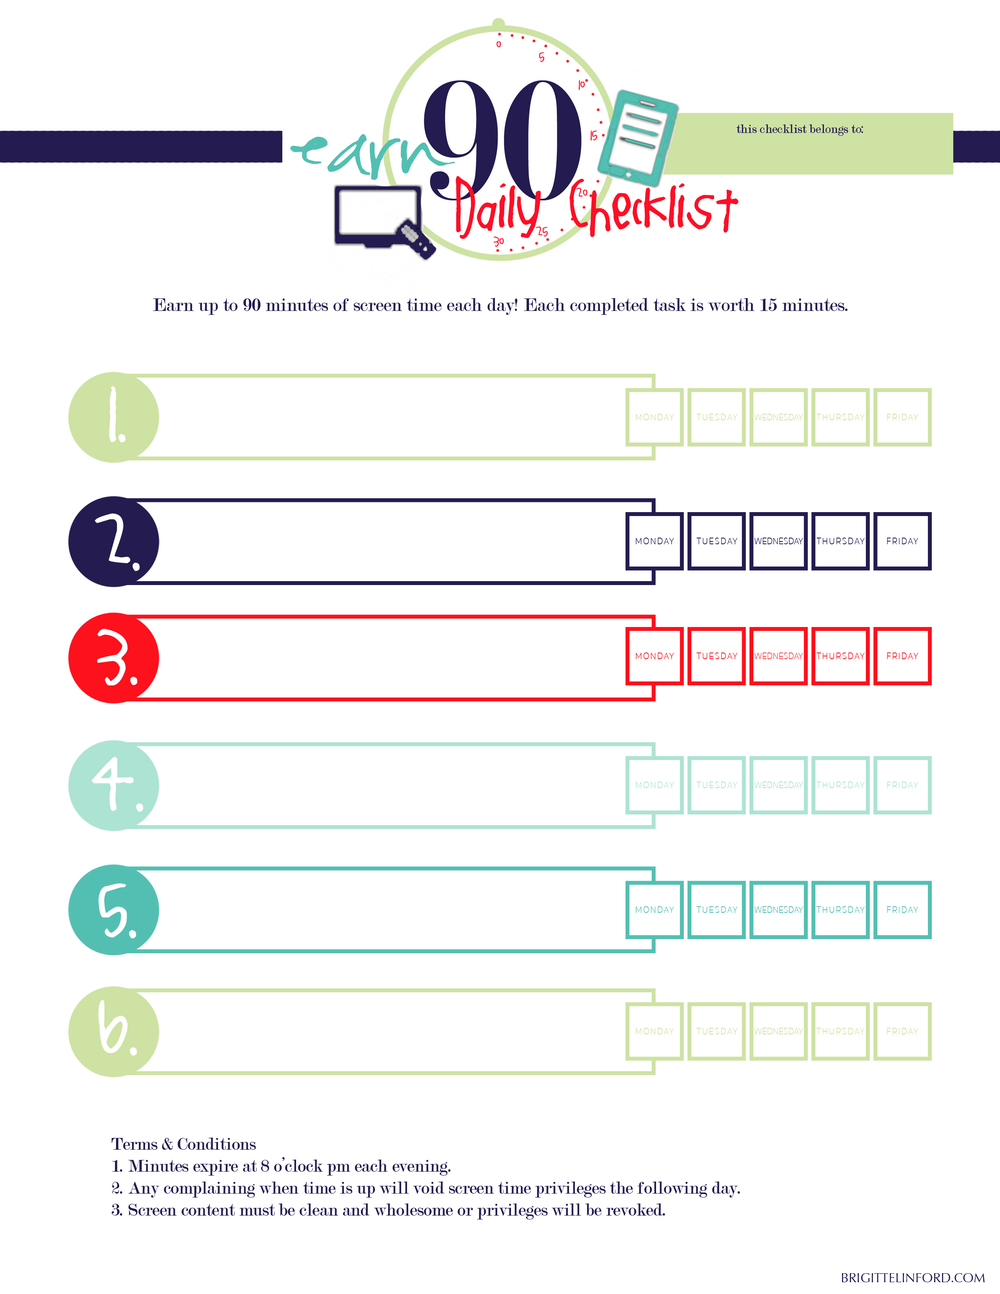 FREE PRINTABLE! A CHECKLIST FOR YOUR CHILDREN TO EARN SCREEN TIME THIS SUMMER!